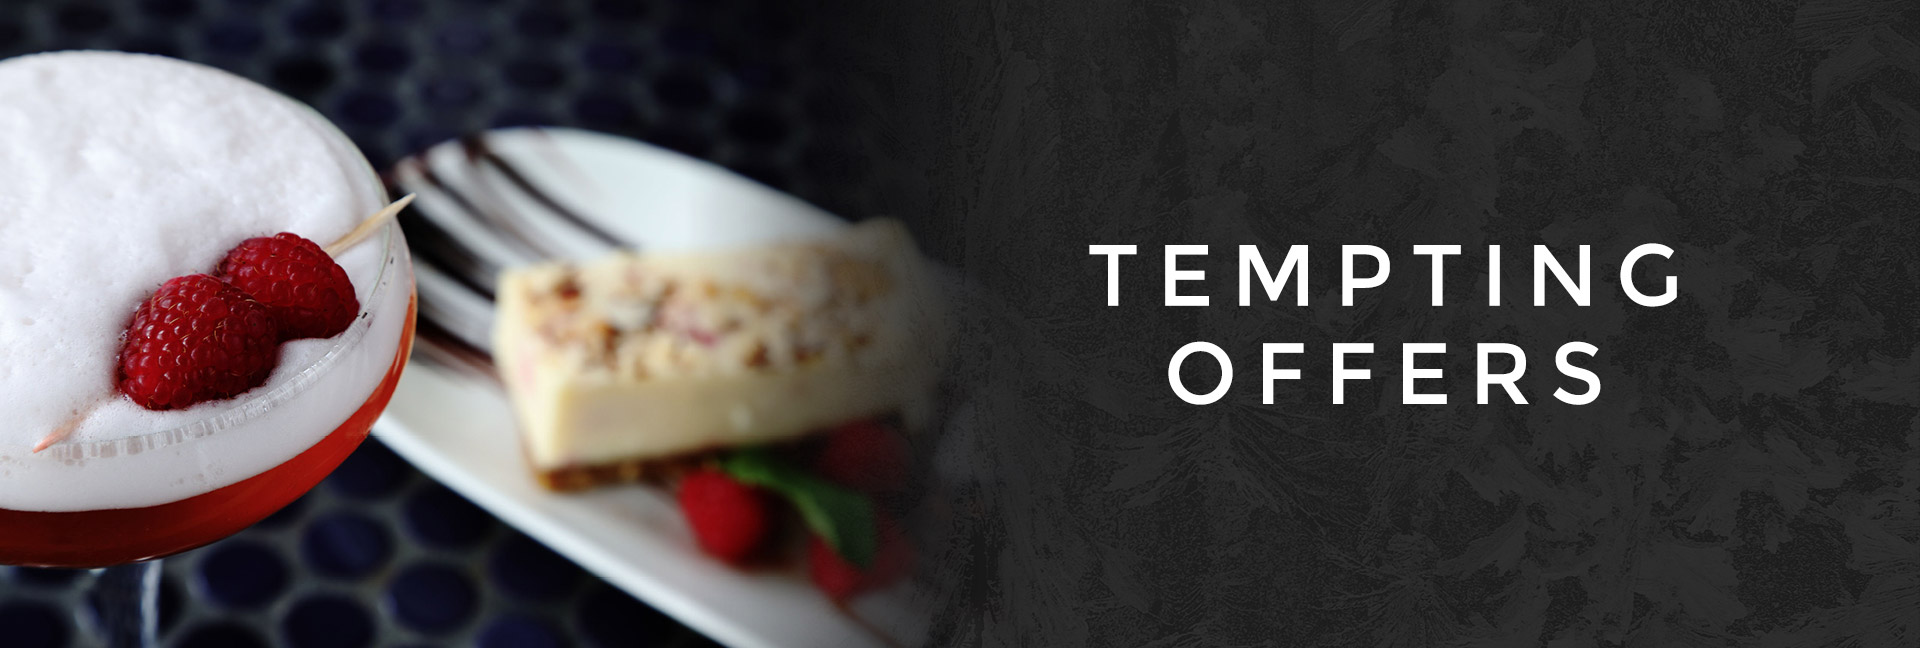 Temping offers at All Bar One Brindleyplace